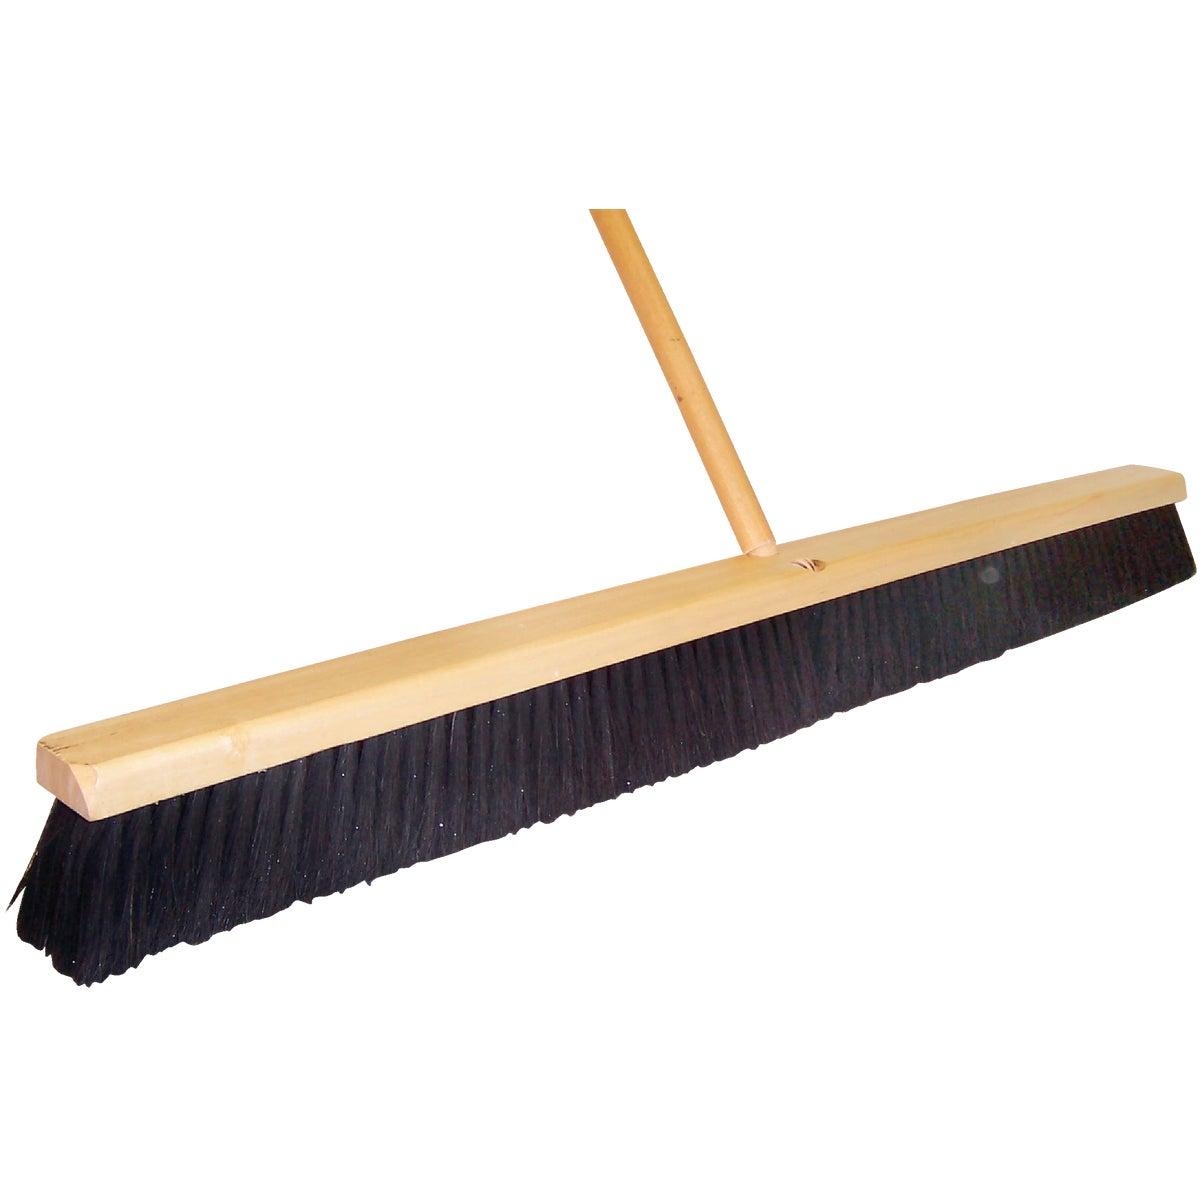 "24"" HORSEHAIR PUSH BROOM - 10603 by D Q B Ind"